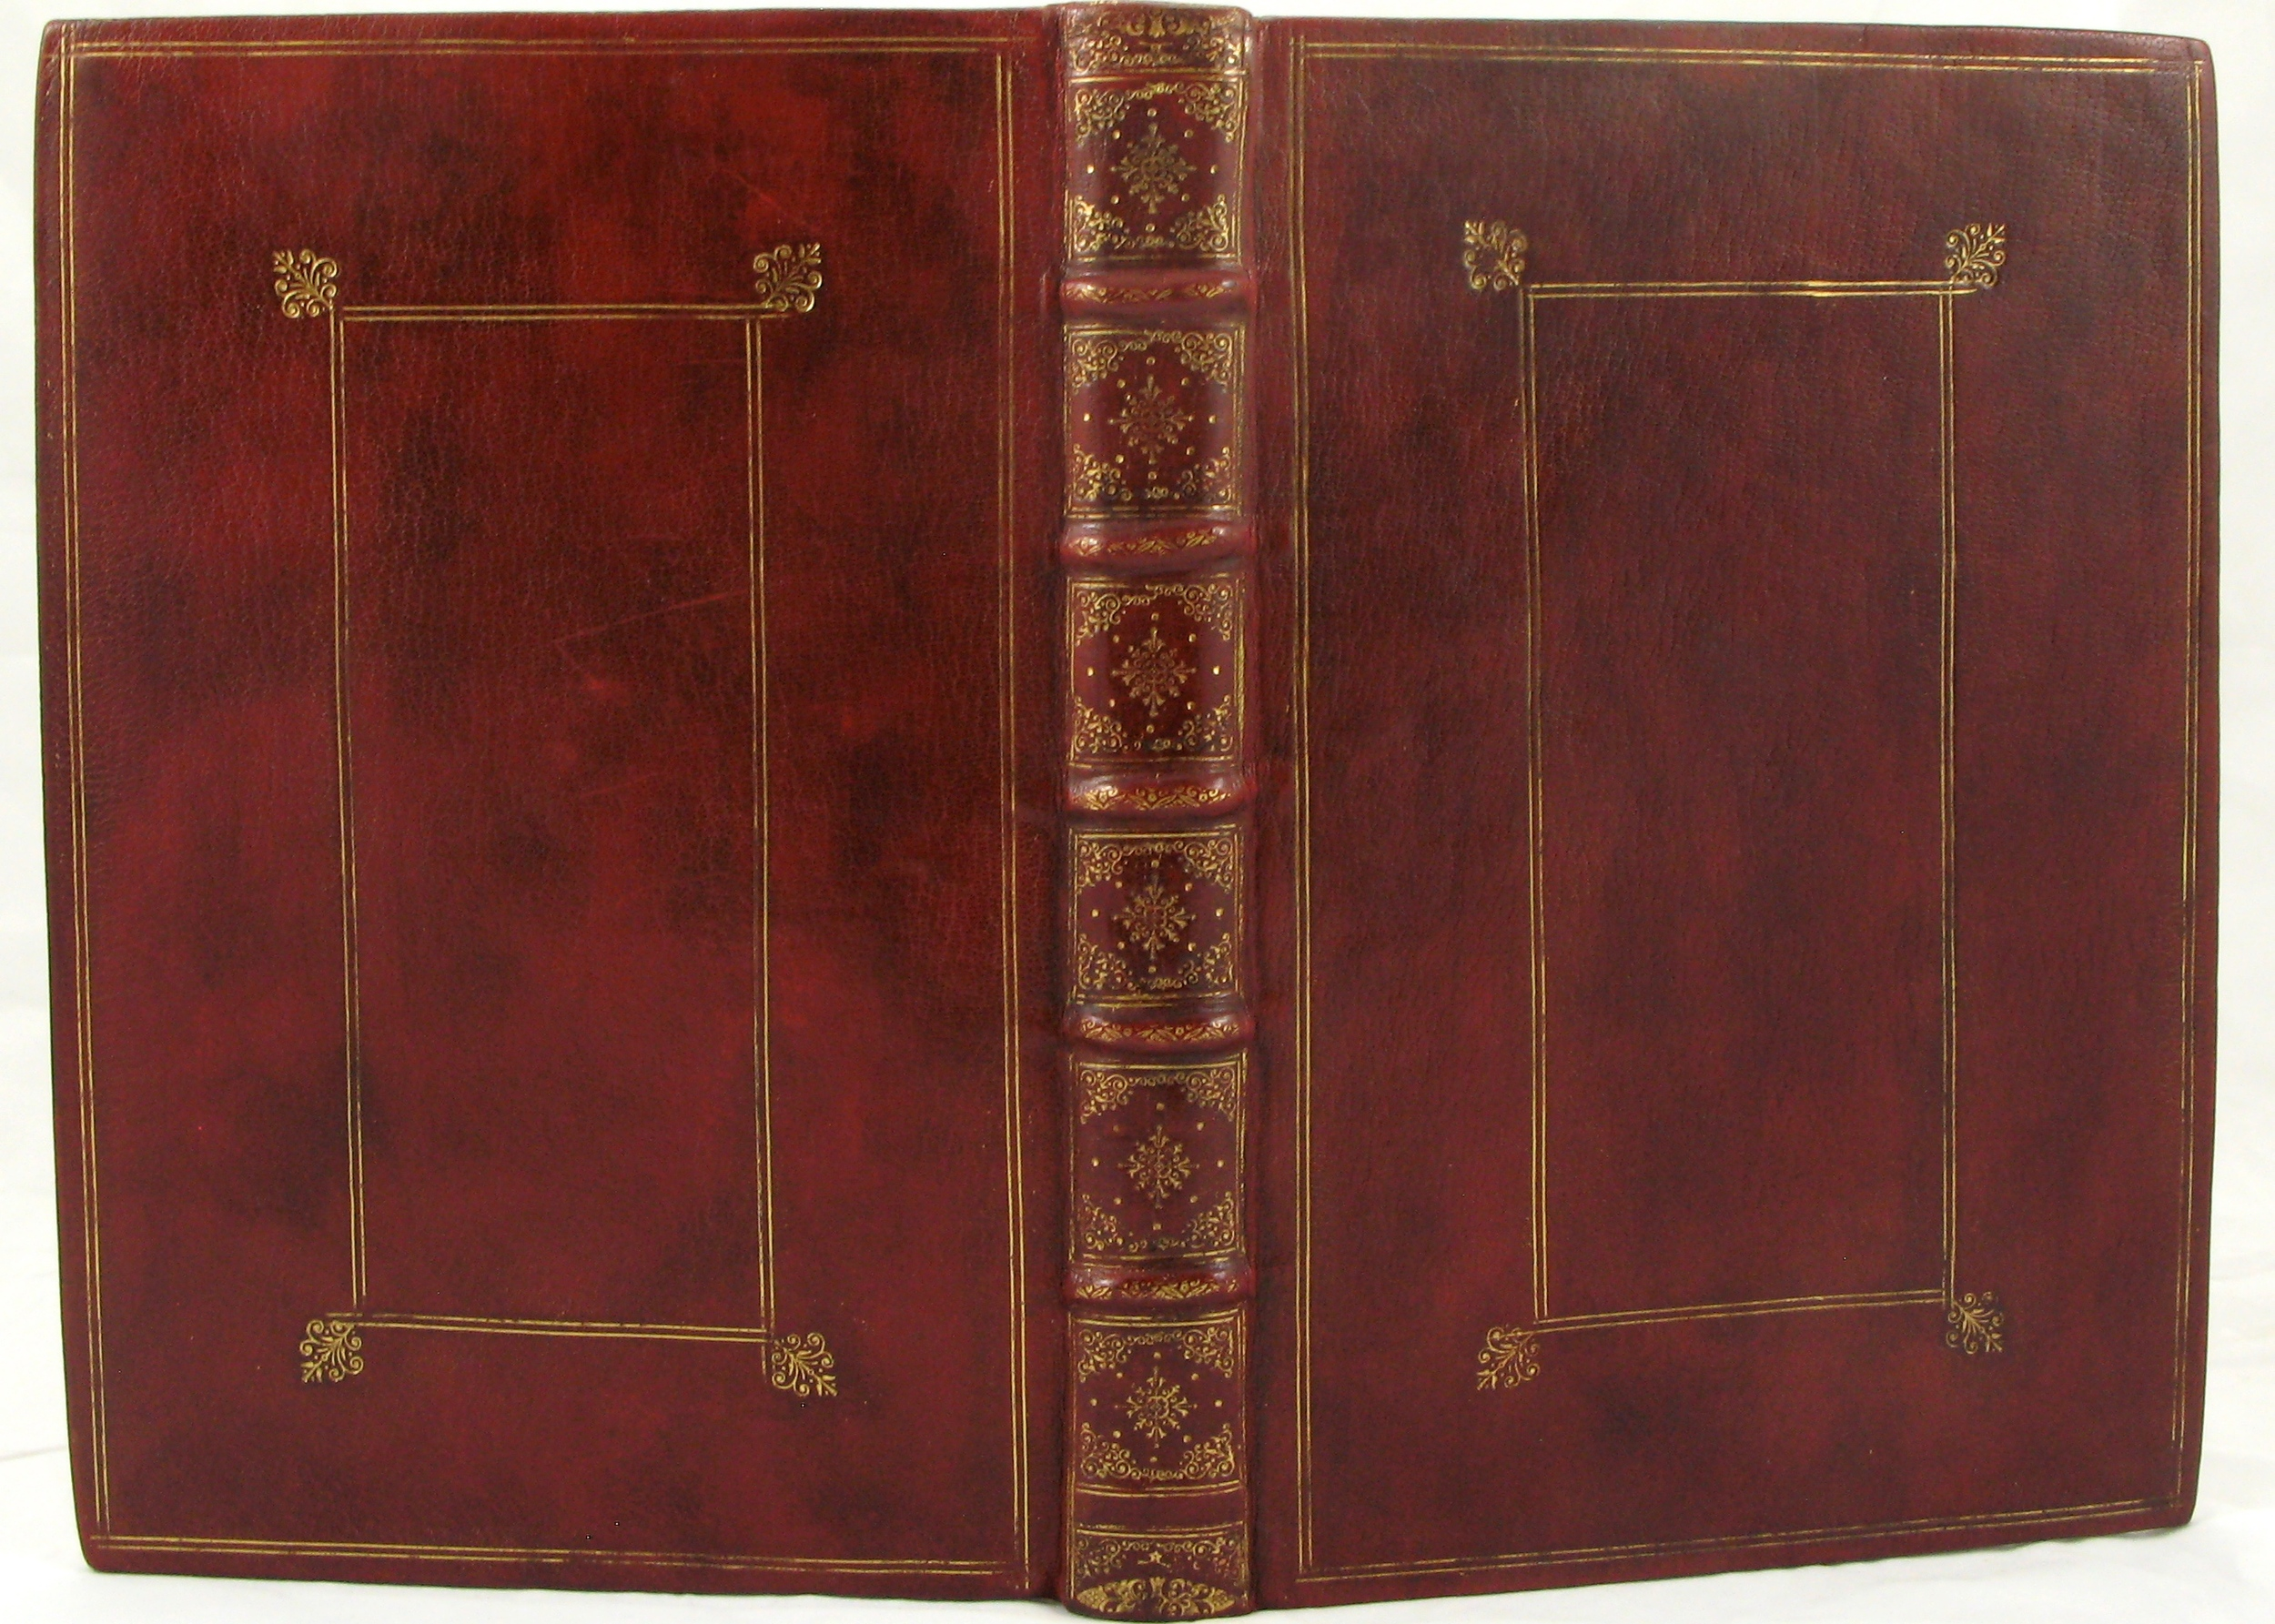 Copy of New Binding in Antique Style